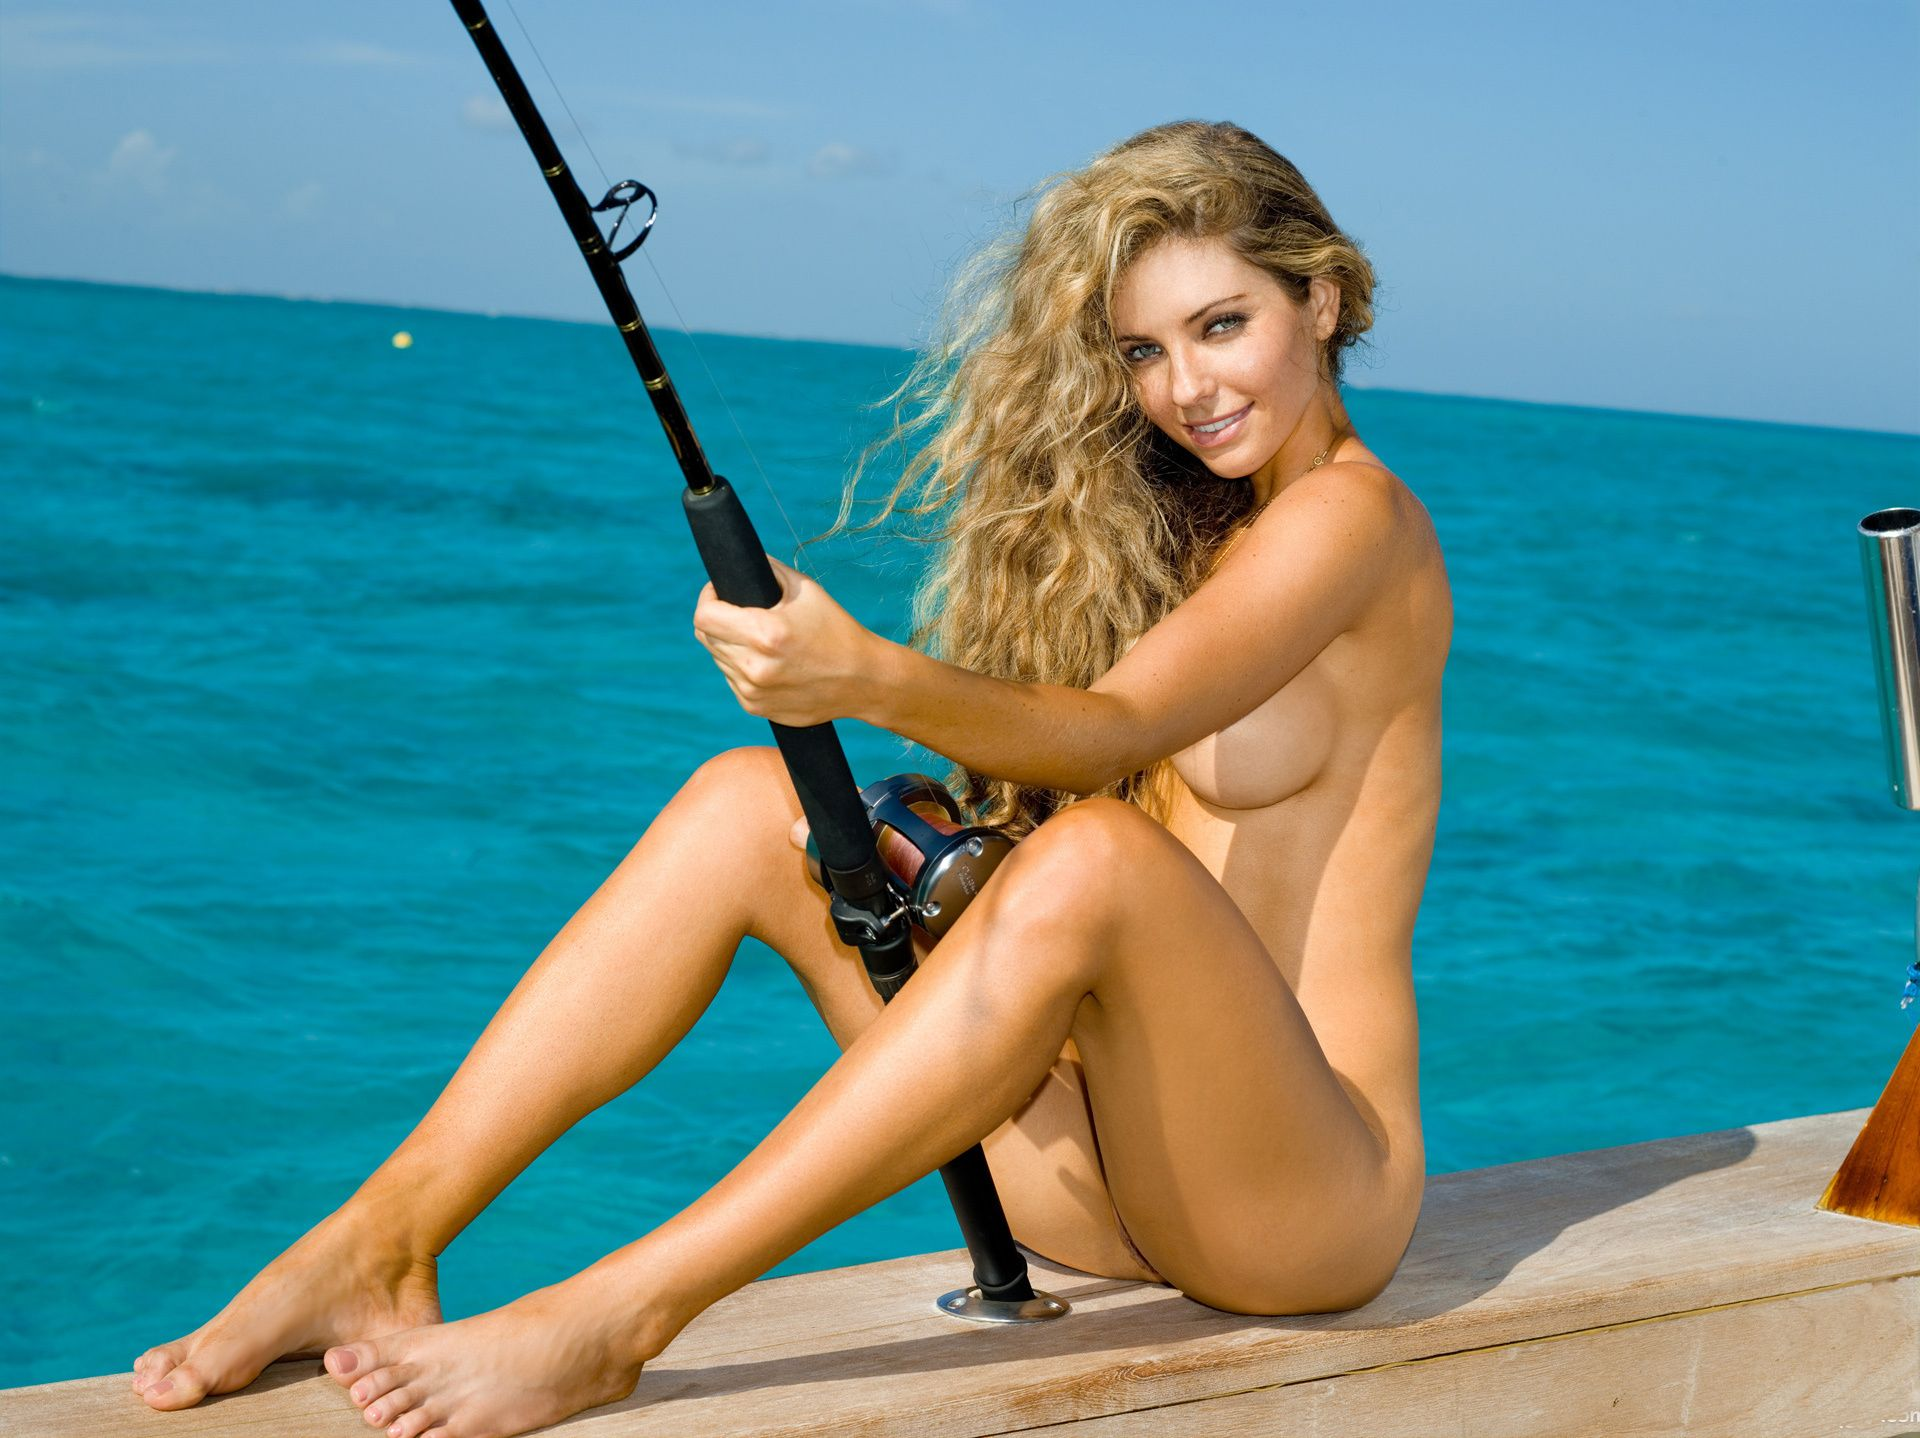 Nude Women Fishing Photos  My Fishin Buddies  Pinterest -5692